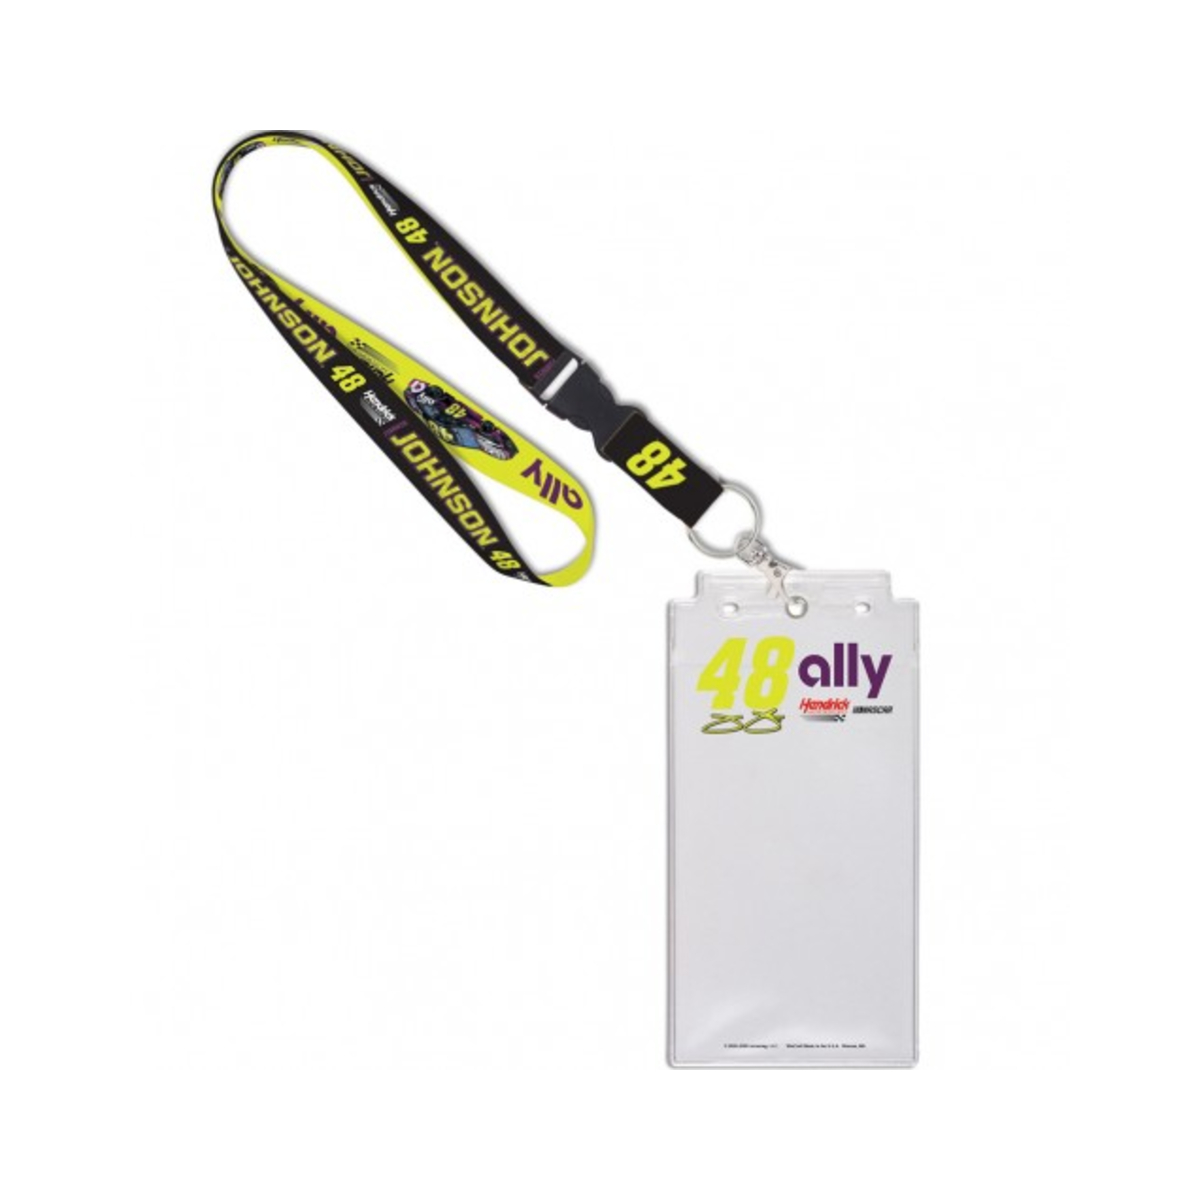 Jimmie Johnson #48 2020 ally Credential Holder with Lanyard